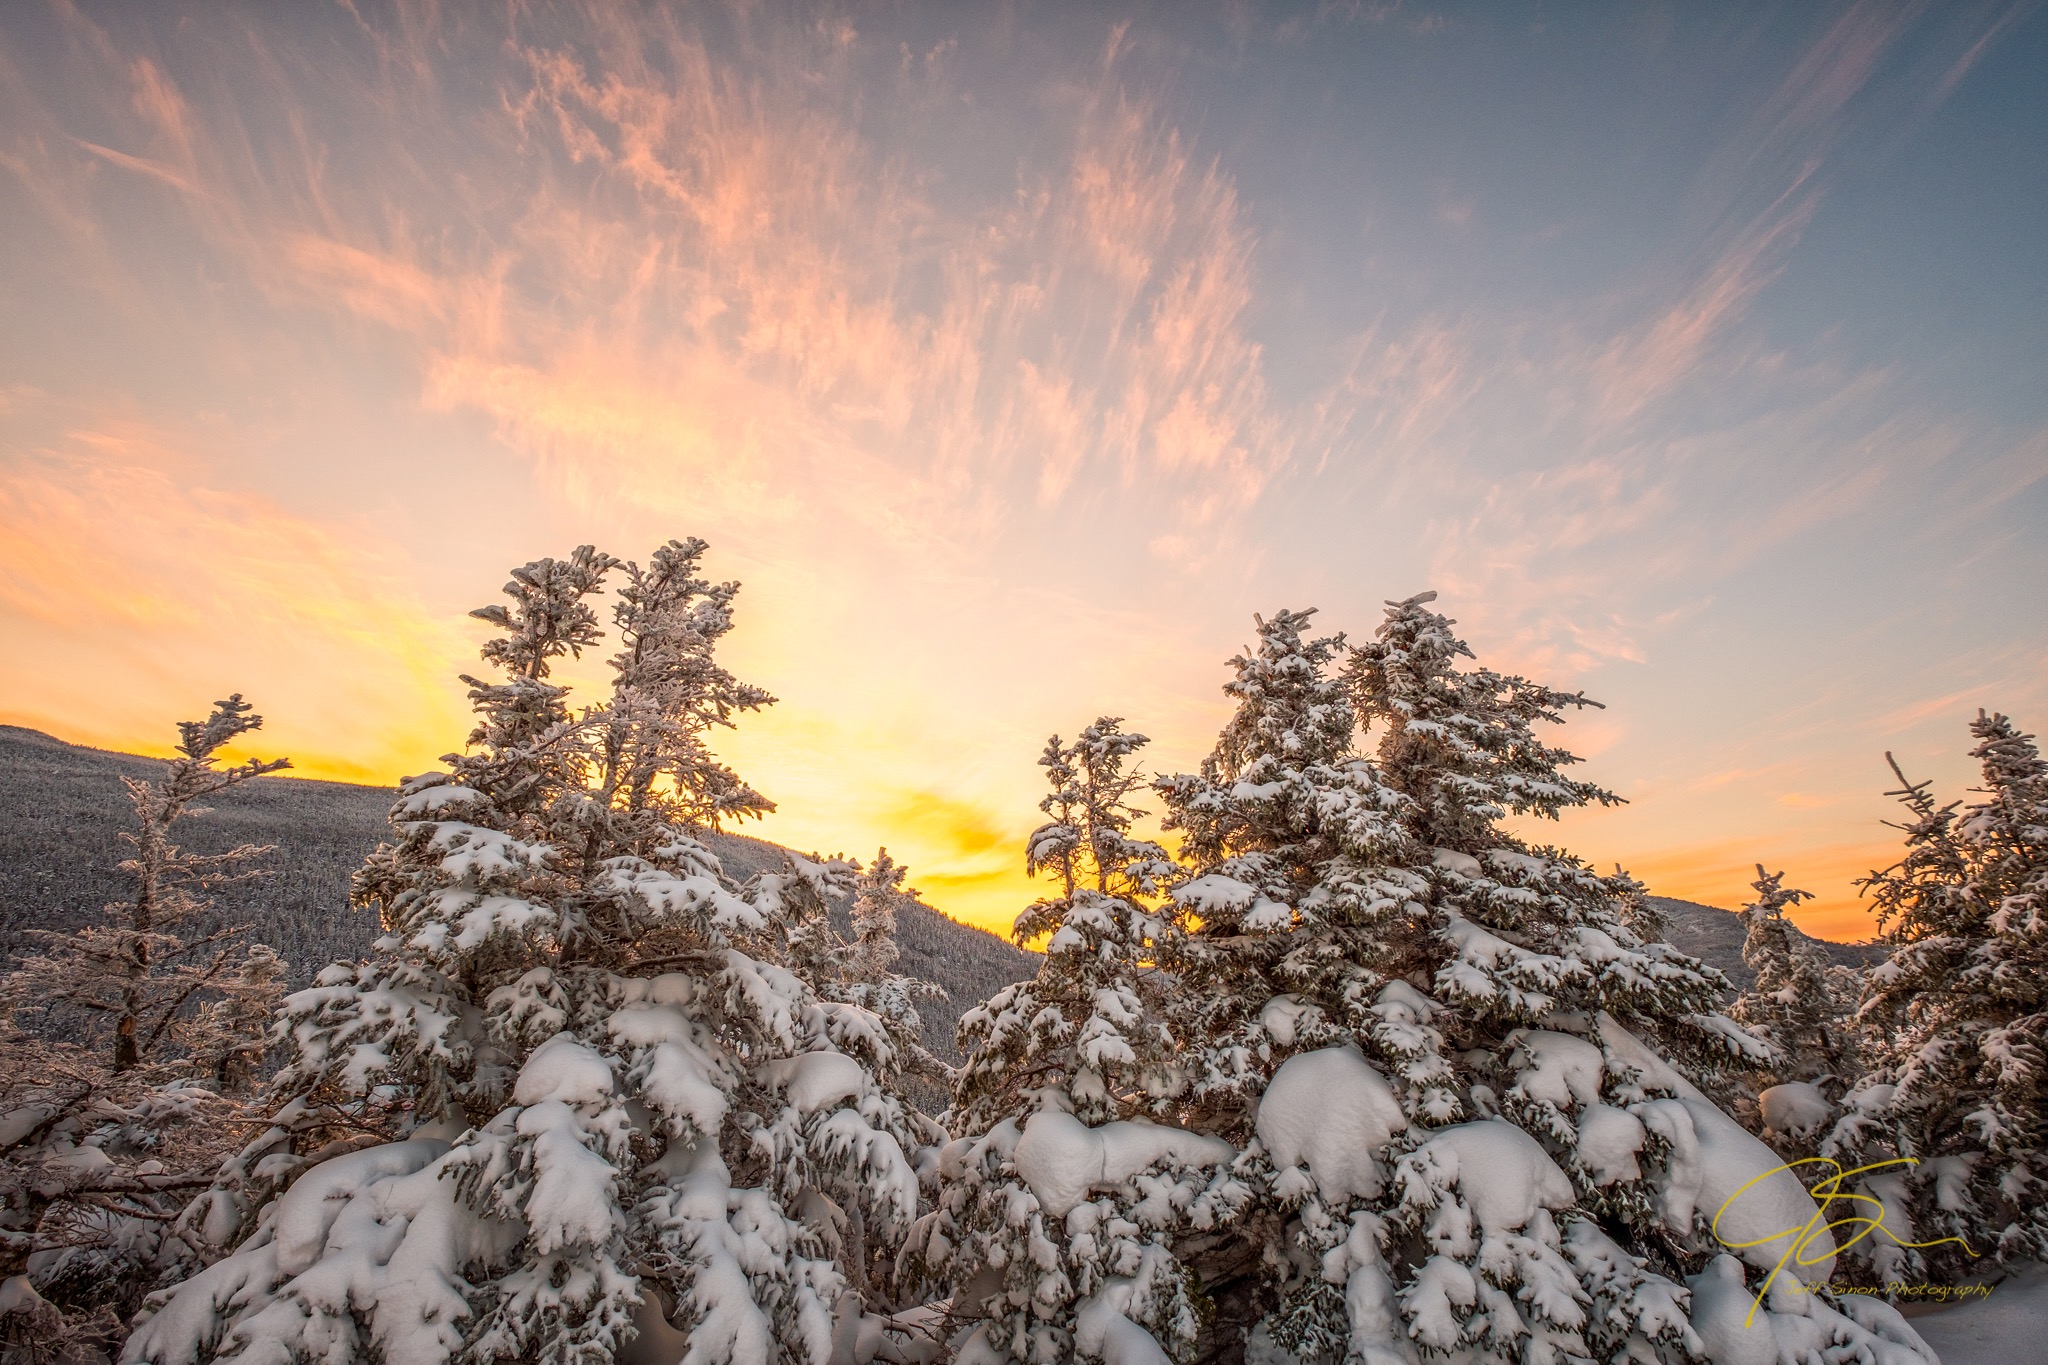 The last of the suns golden glow as it sets over the snowy White Mountains of New Hampshire. The snow covered spruce trees the only witness to the passing of another winter day.